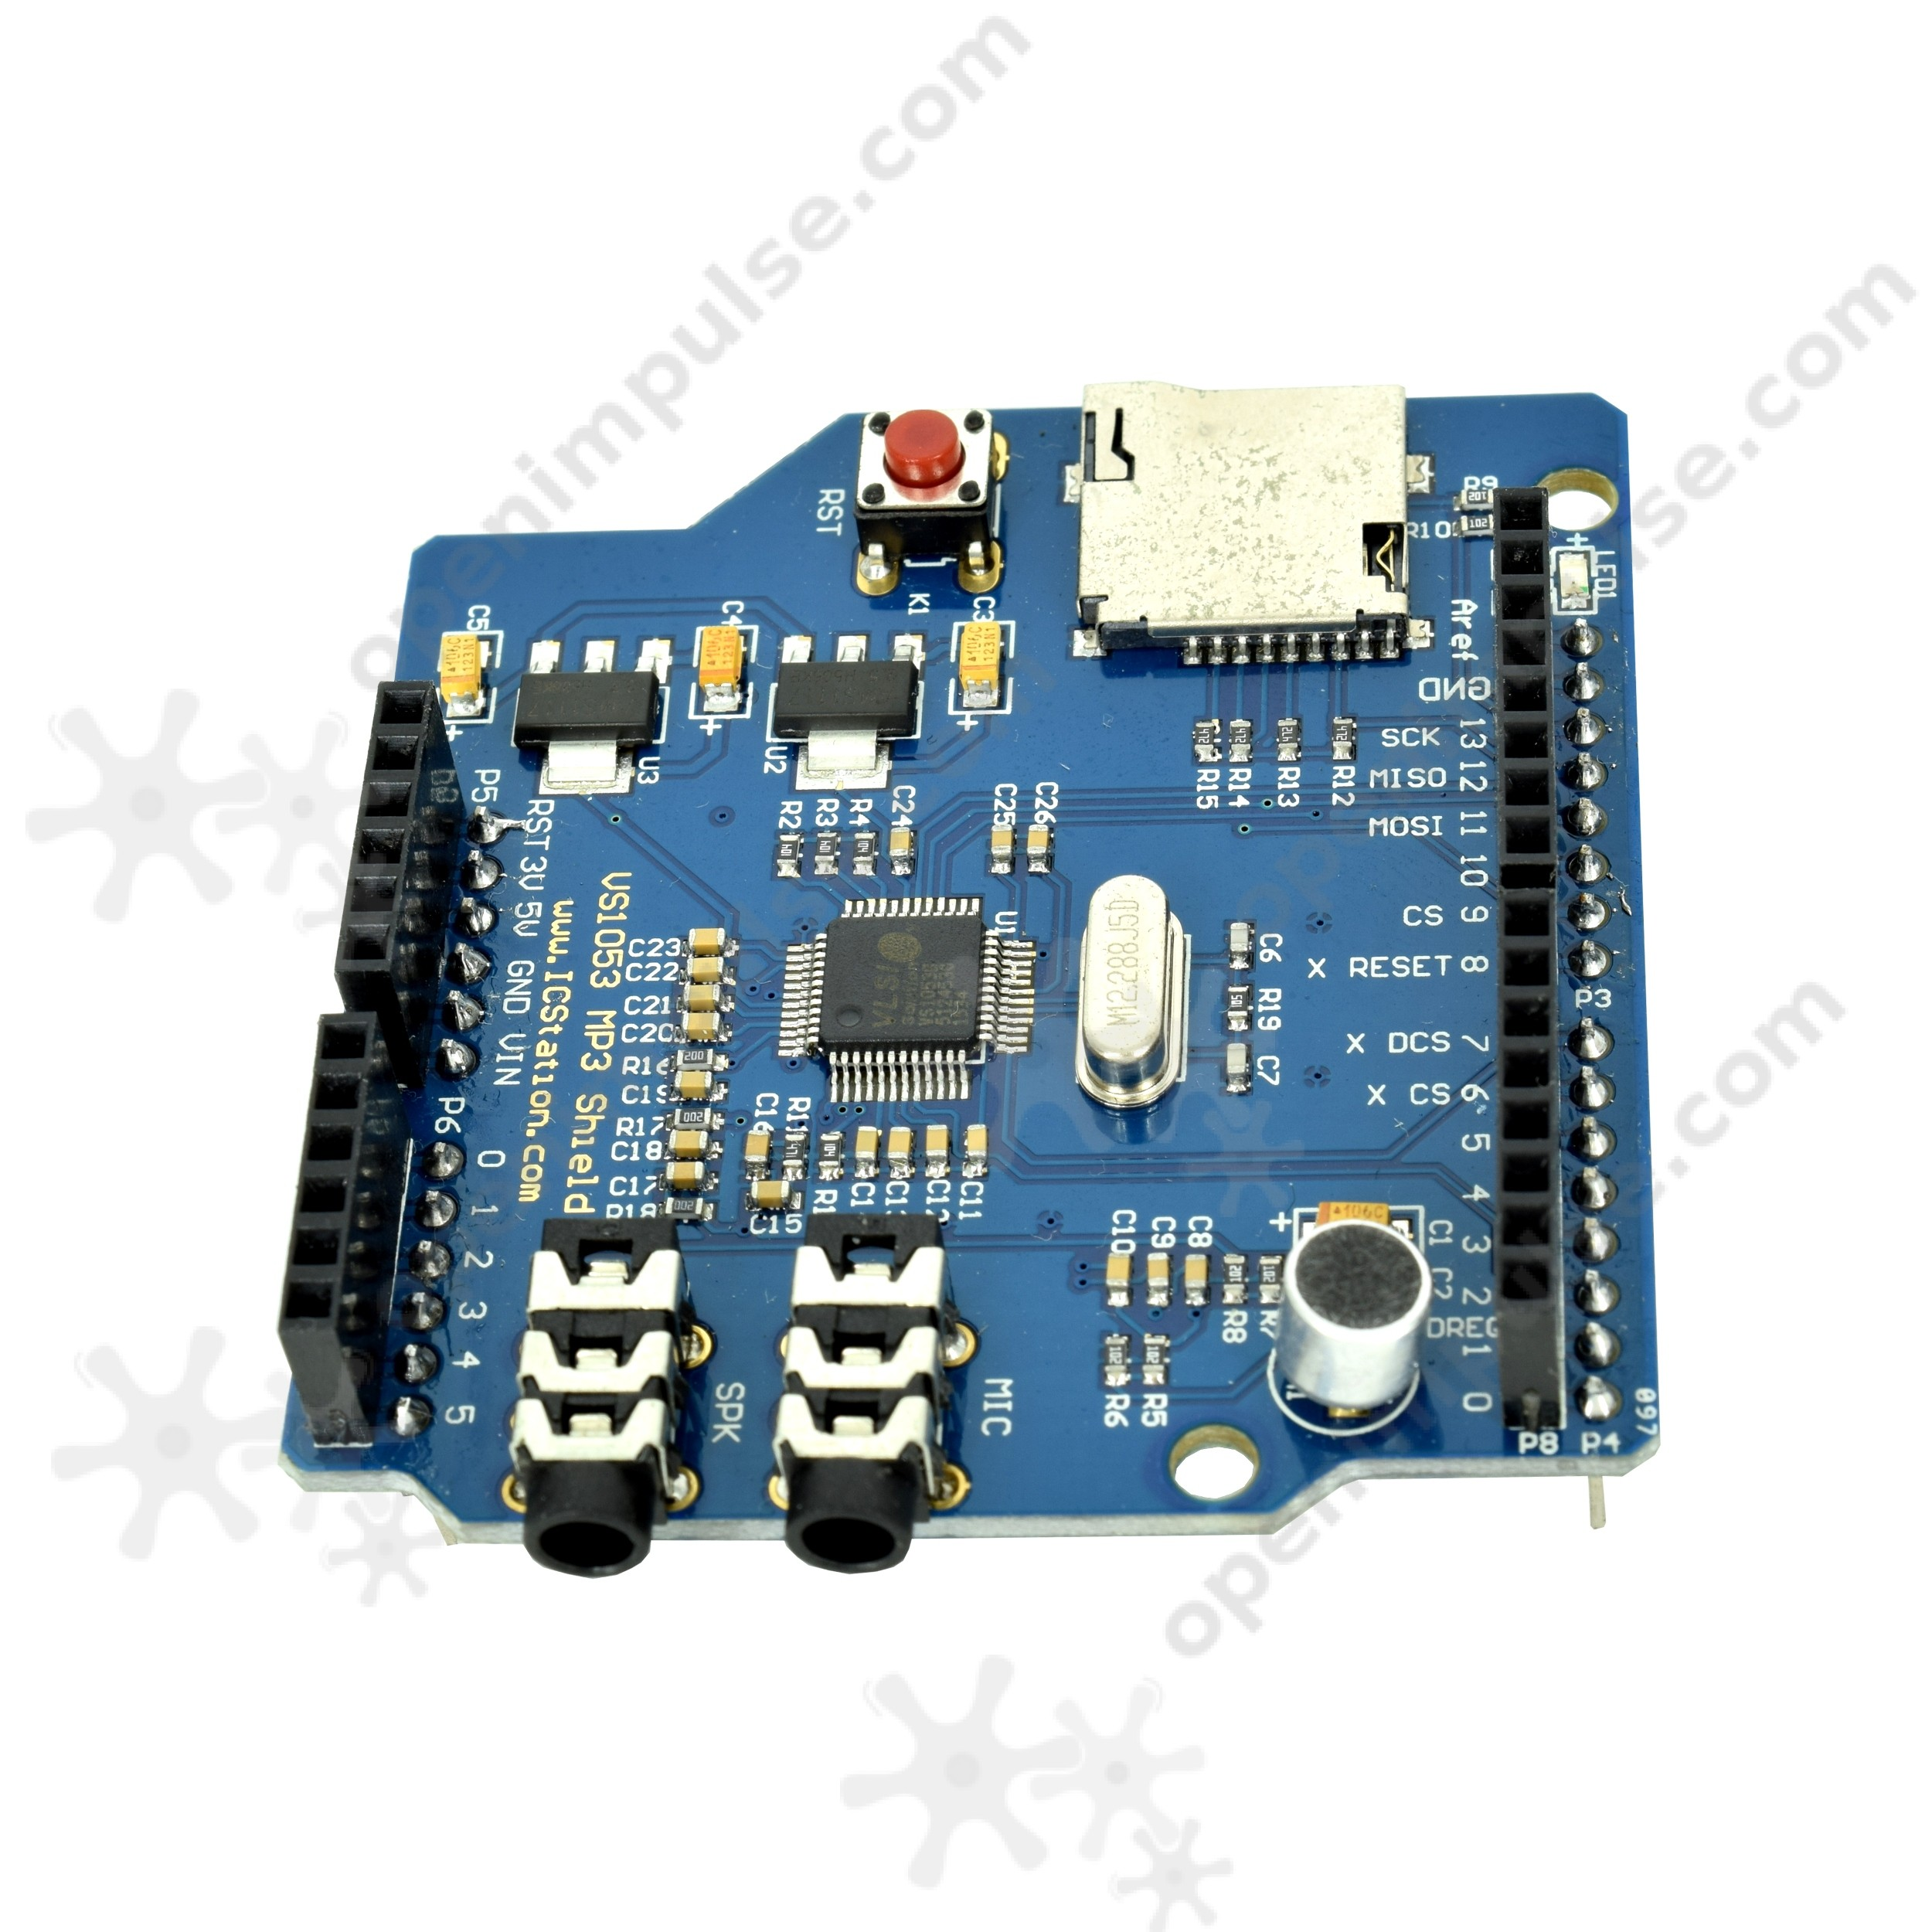 Vs1053 Shield For Arduino With Sd Card Slot And Microphone Open Circuit 1 3